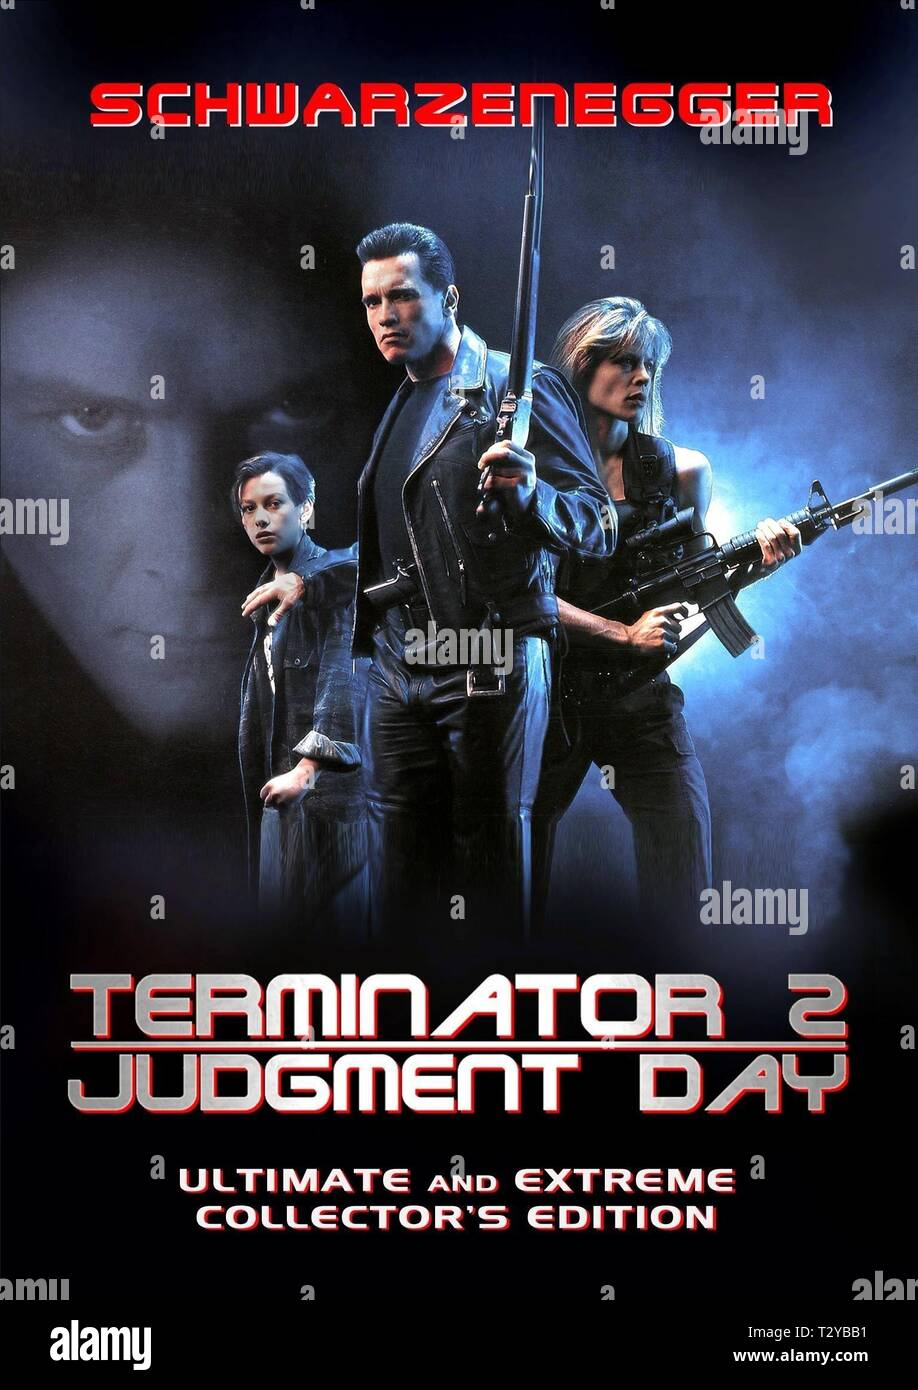 Terminator 2 Judgment Day High Resolution Stock Photography And Images Alamy